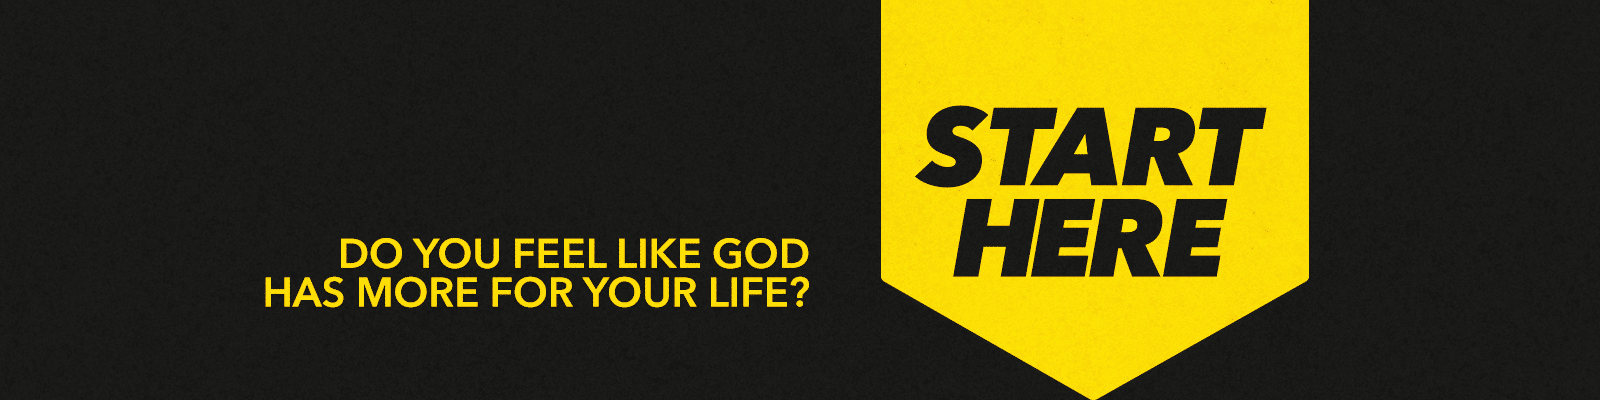 Start Here - Part 4 - SpringHill Church